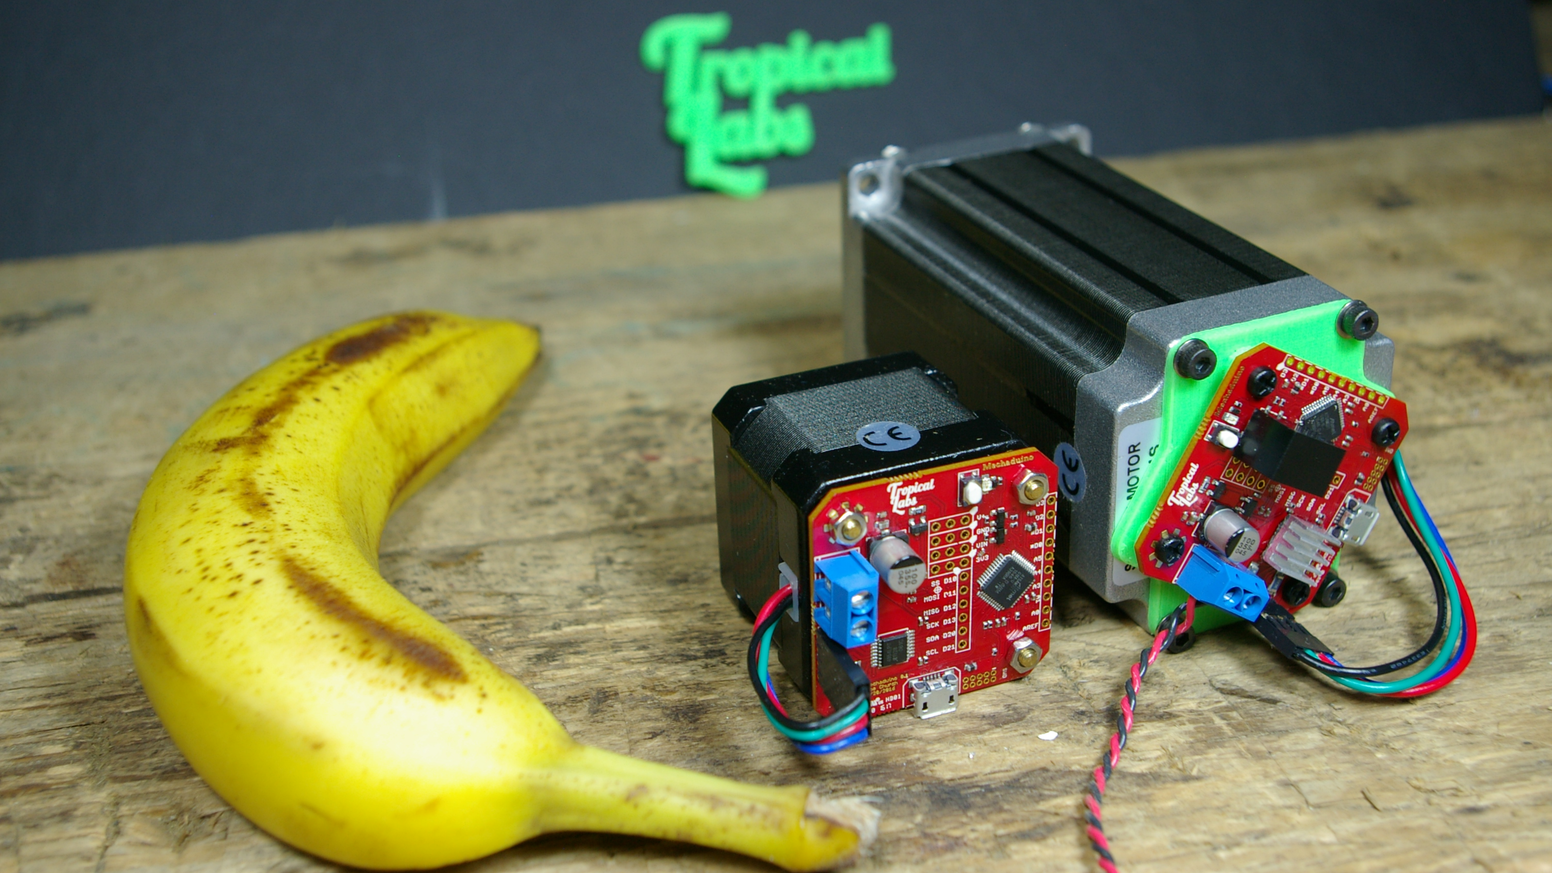 Mechaduino Powerful Open Source Industrial Servo Motor By Stepper Control Circuit Proteus Simulation Pic Assembly Is An Affordable Position Torque